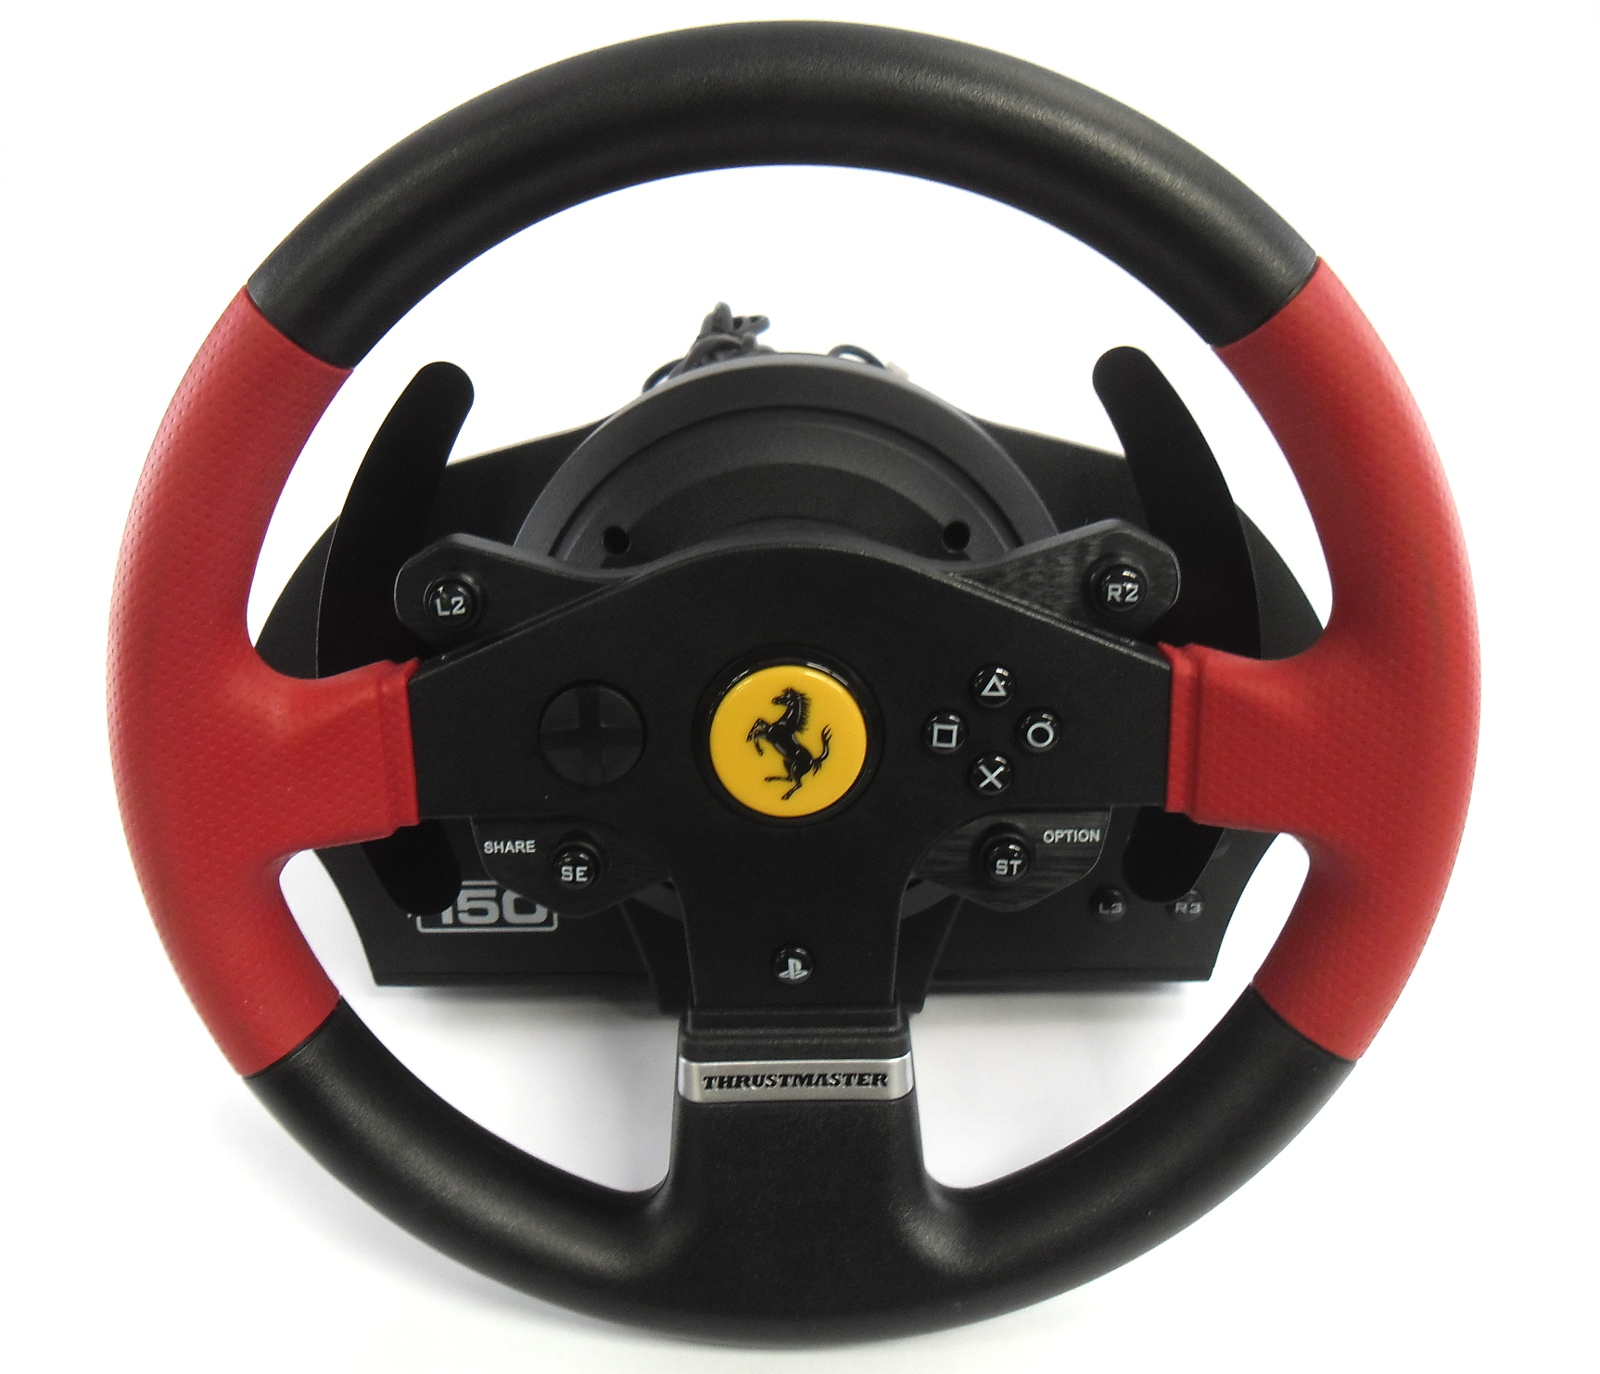 Thrustmaster T150 Force Feedback Wheel Ferrari Edition /w Pedals /f PS3 PS4  PC